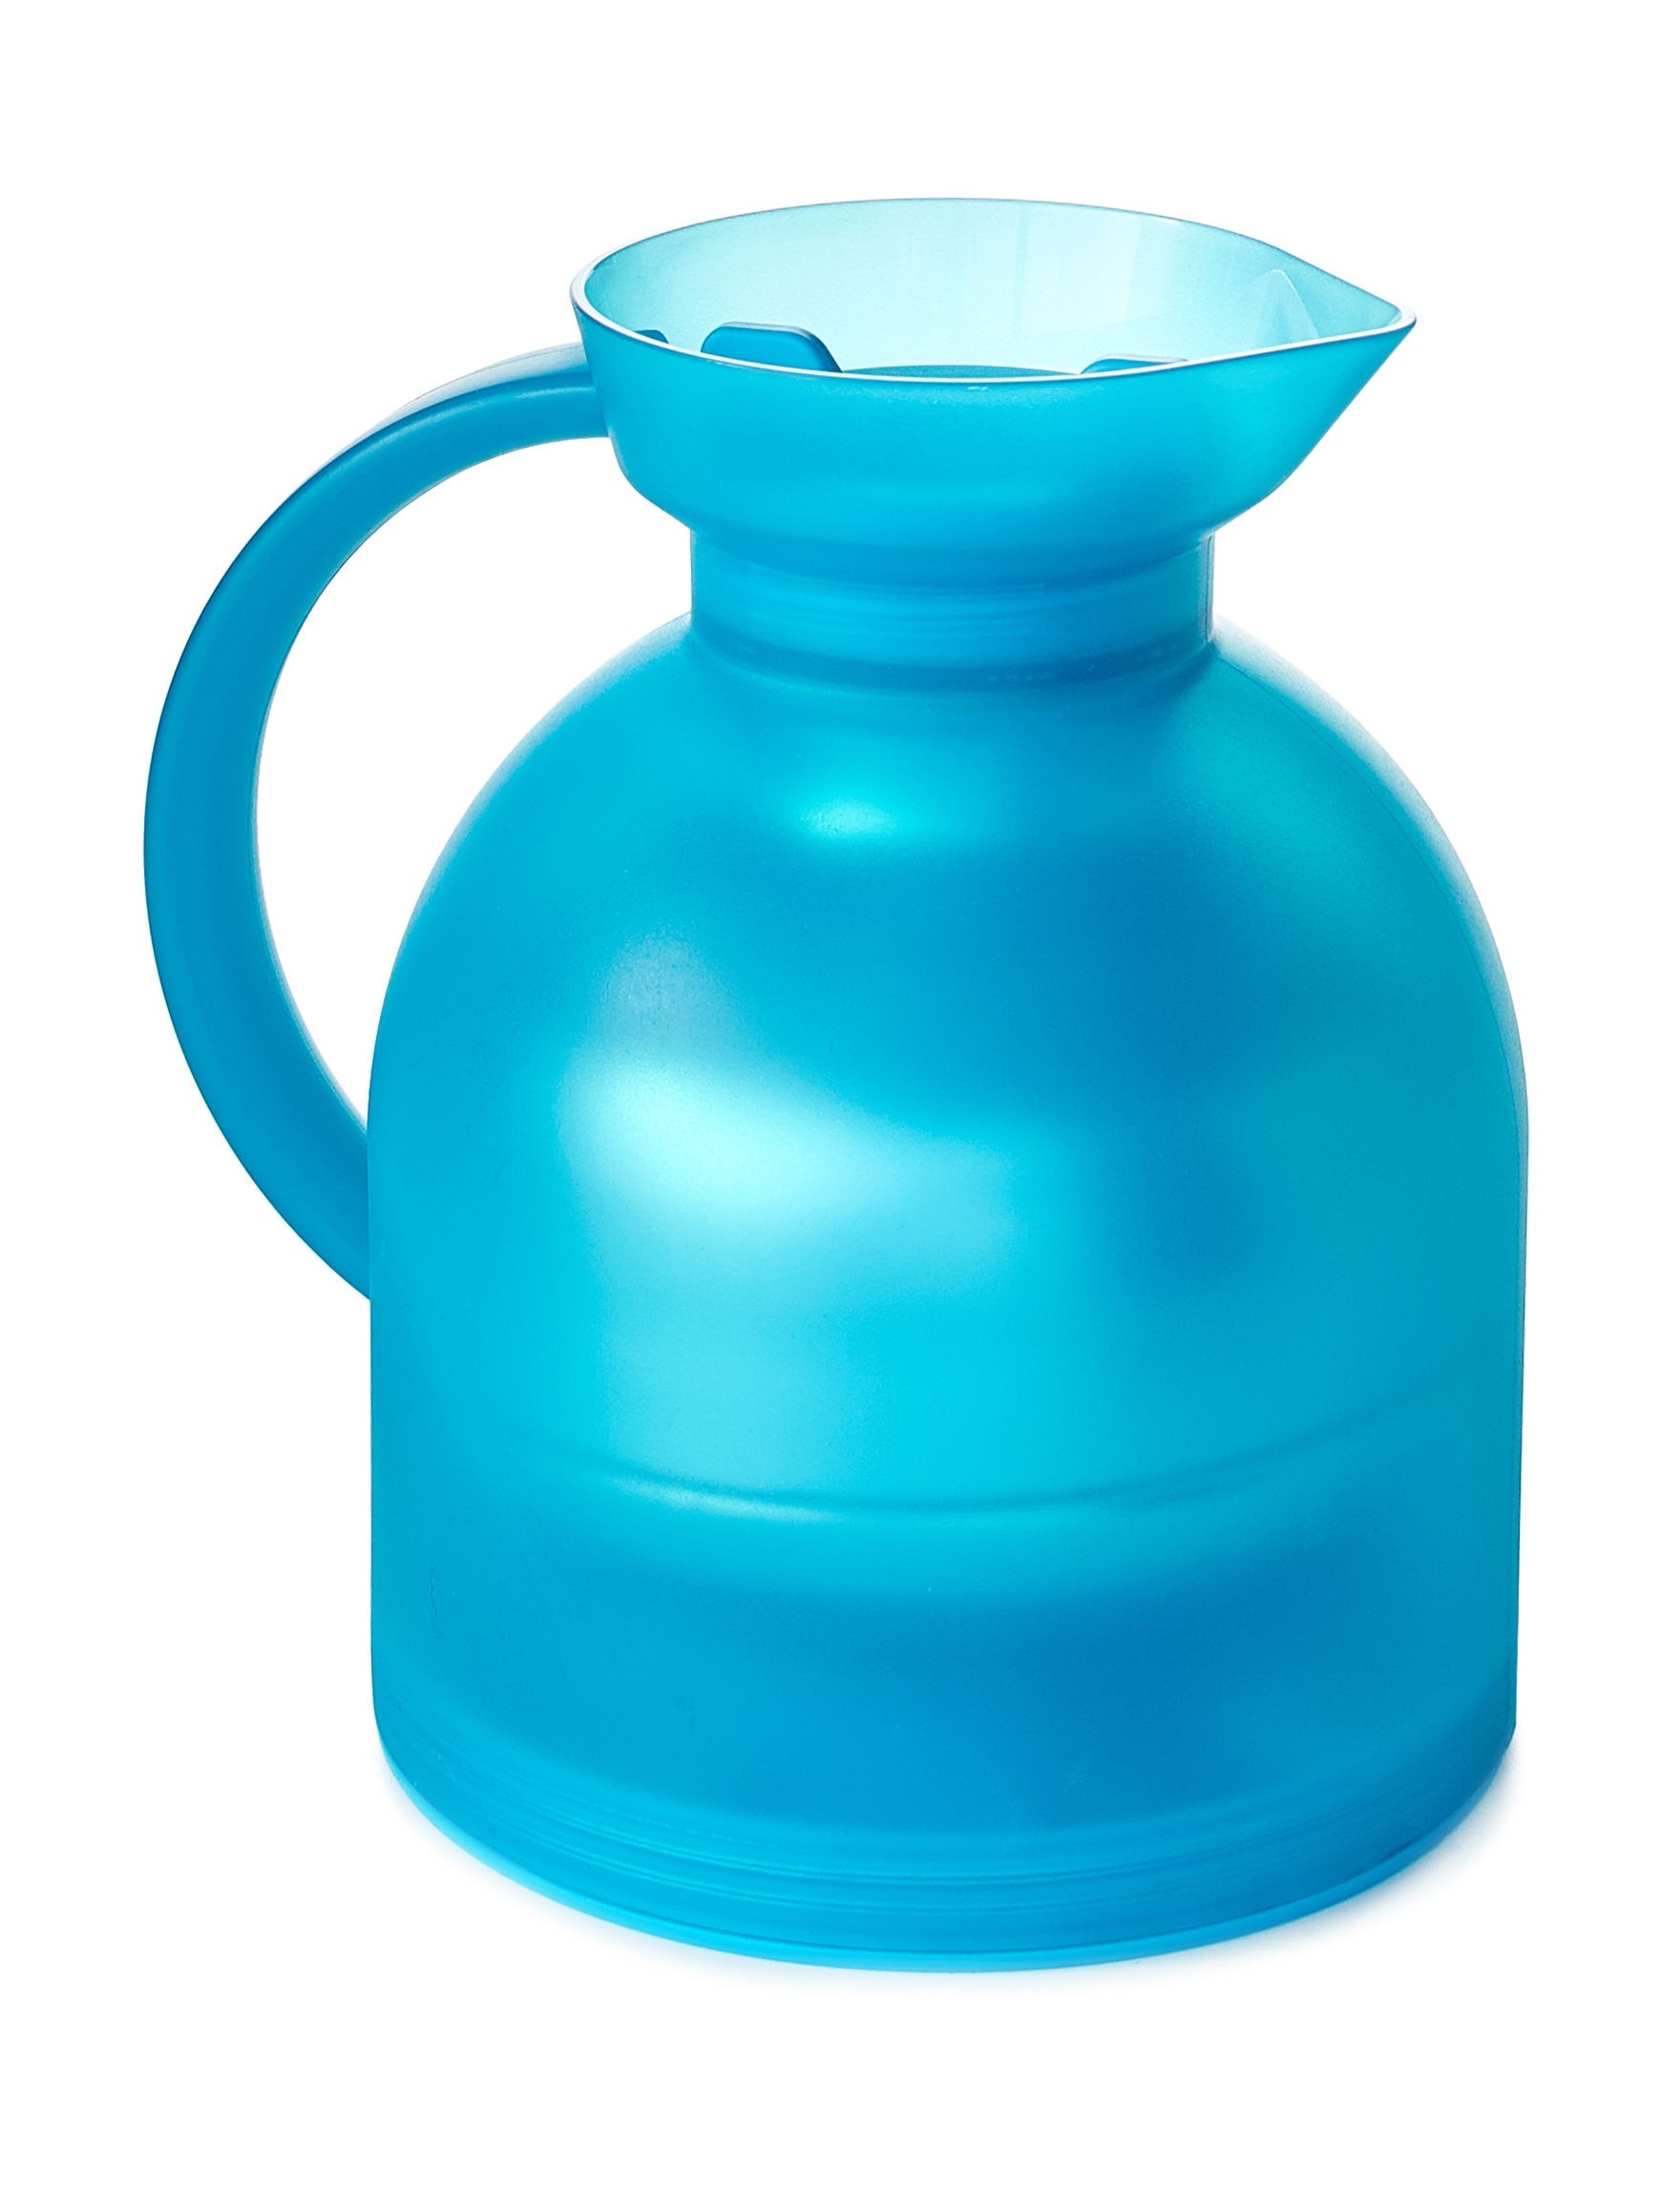 Reflex Sales Turquoise Beverage Dispensers & Tubs Serveware